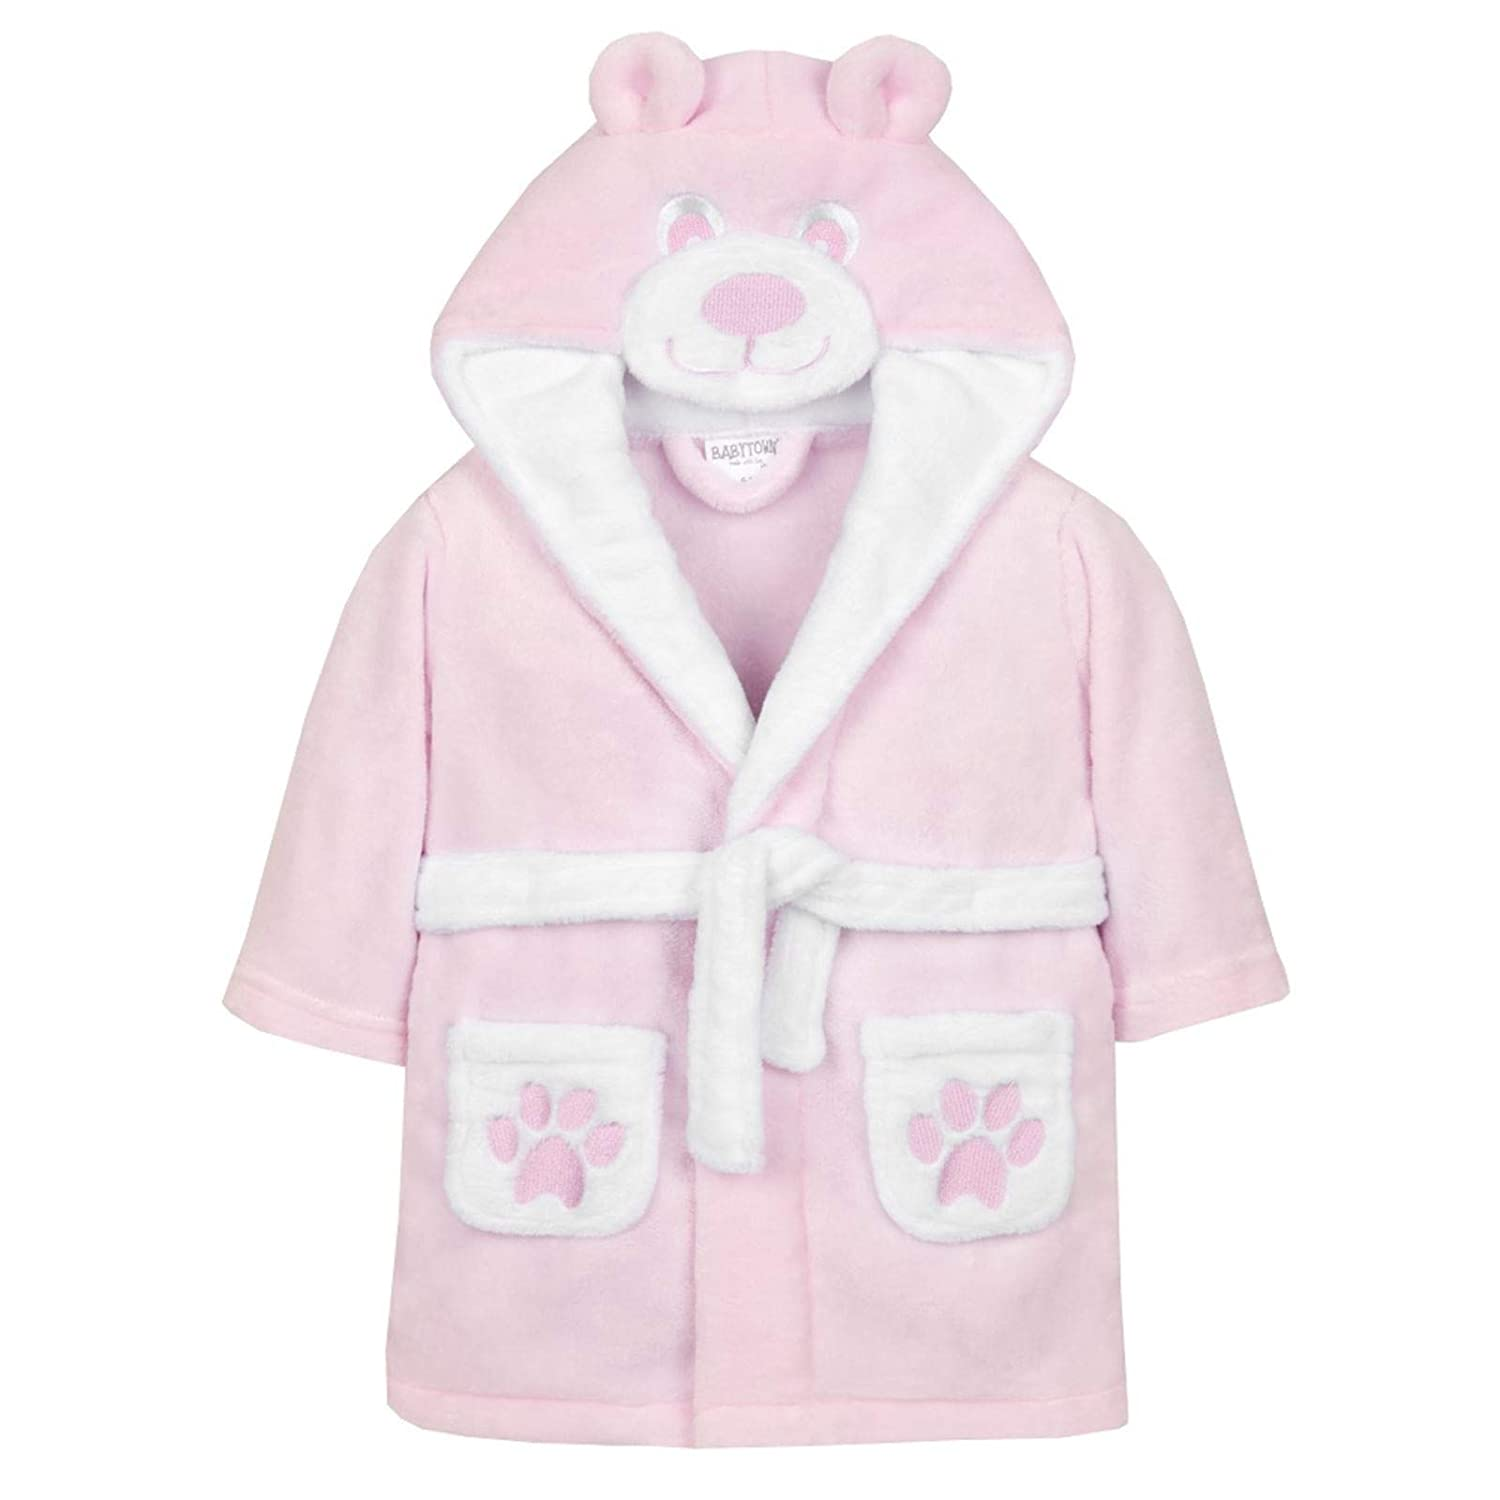 c1460d9489dea Baby Dressing Gown from 6 Months to 18 Months Boy or Girl (Pink Teddy Face,  18-24 Months): Amazon.ca: Clothing & Accessories